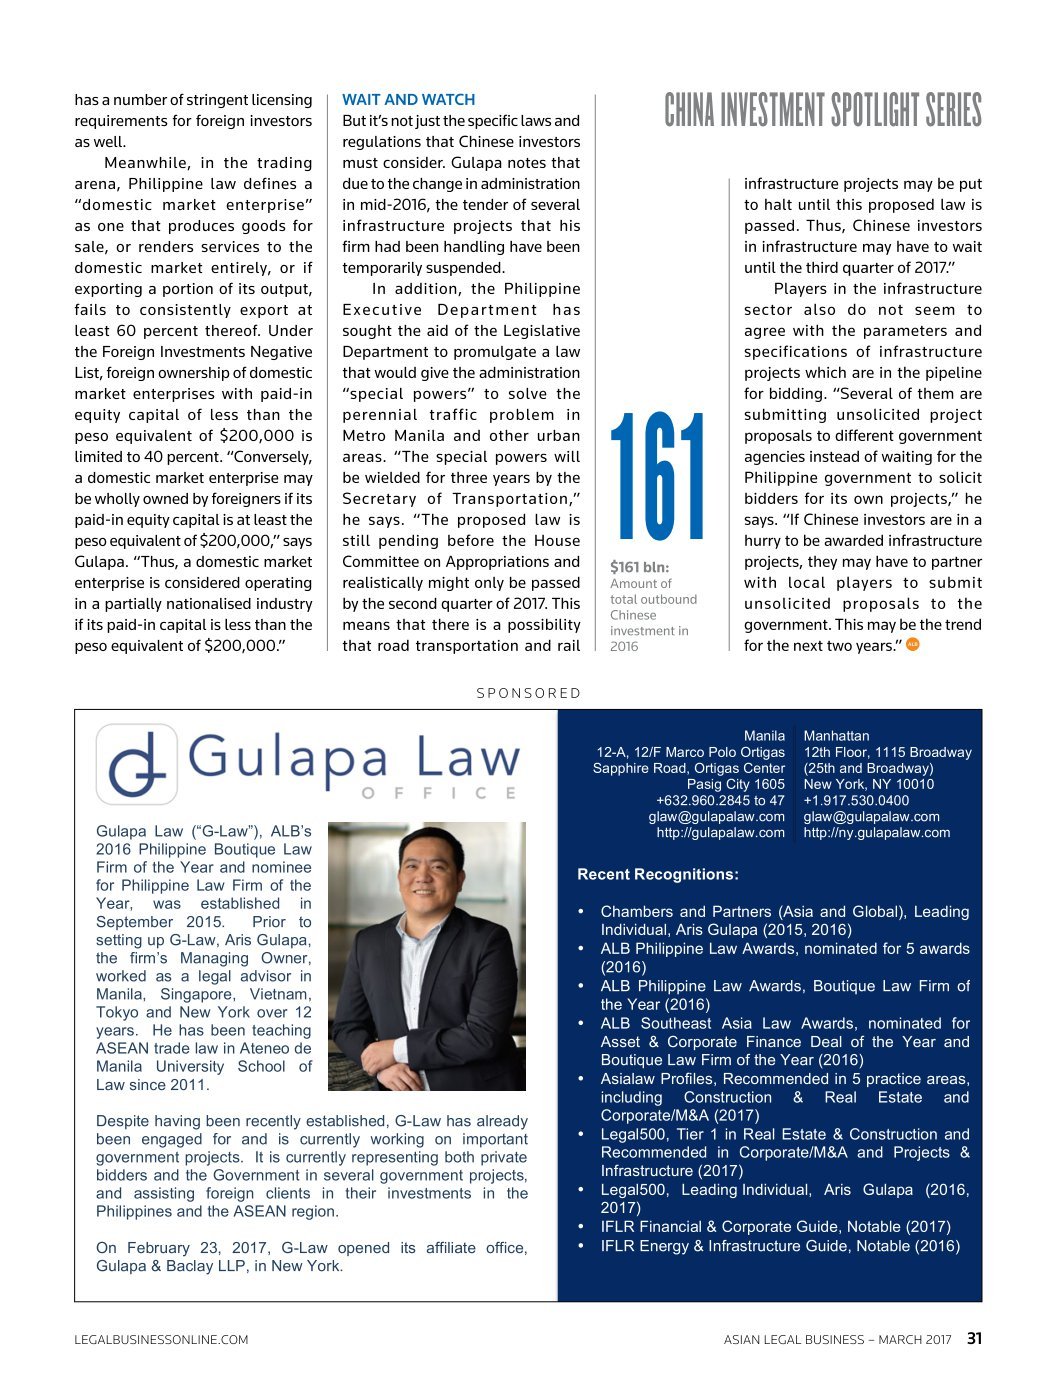 ASIAN LEGAL BUSINESS MARCH 2017